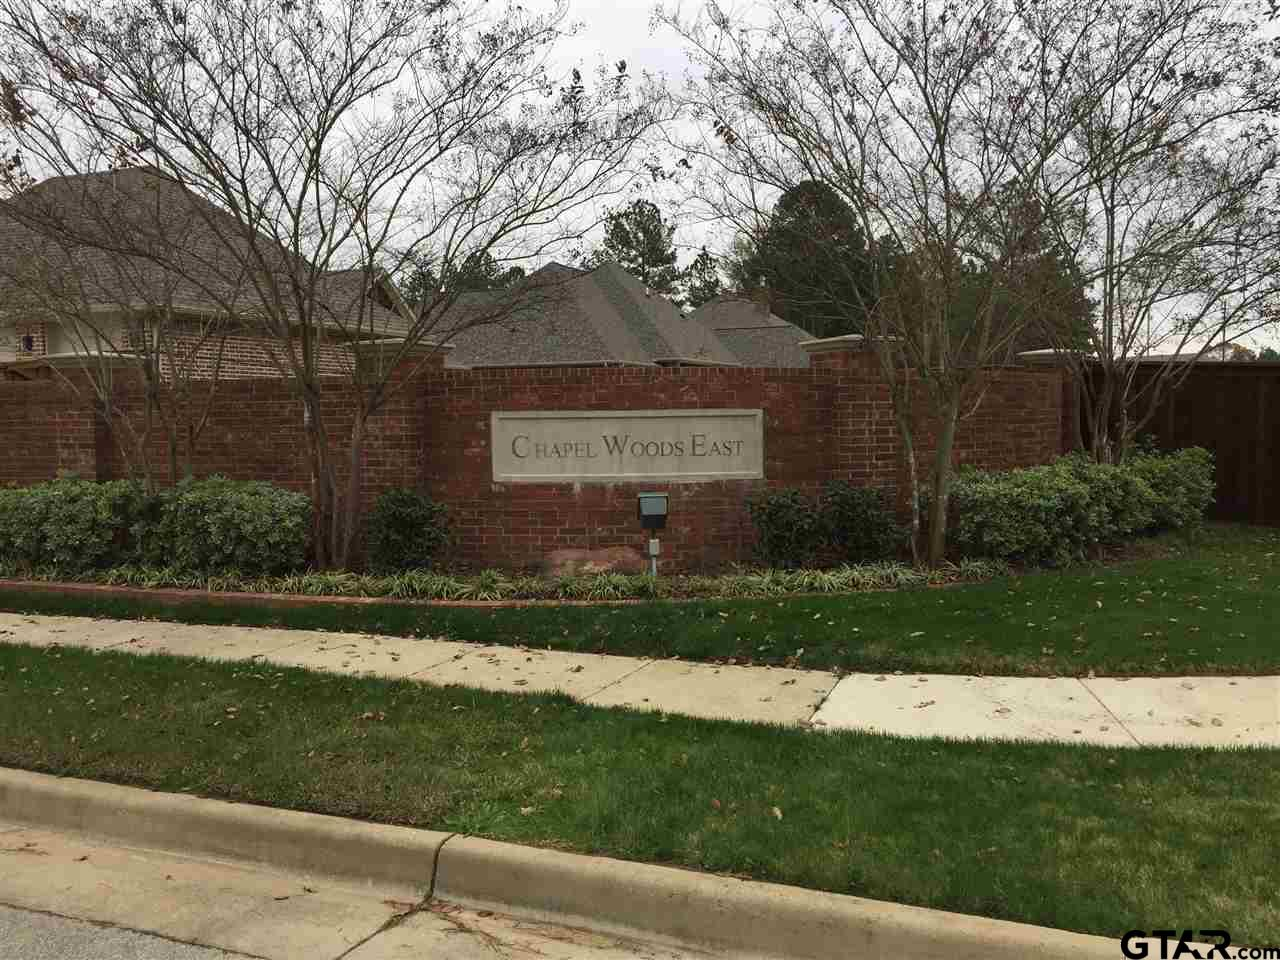 LOTS FOR SALE. Build the Custom Home you have always talked about. Chapel Woods East is close to UT Tyler and Convenient Access to Loop 323. Old Omen Rd. has been updated with landscaped medians, side walks, bike lanes and street lights creating a warm welcome to your new home.